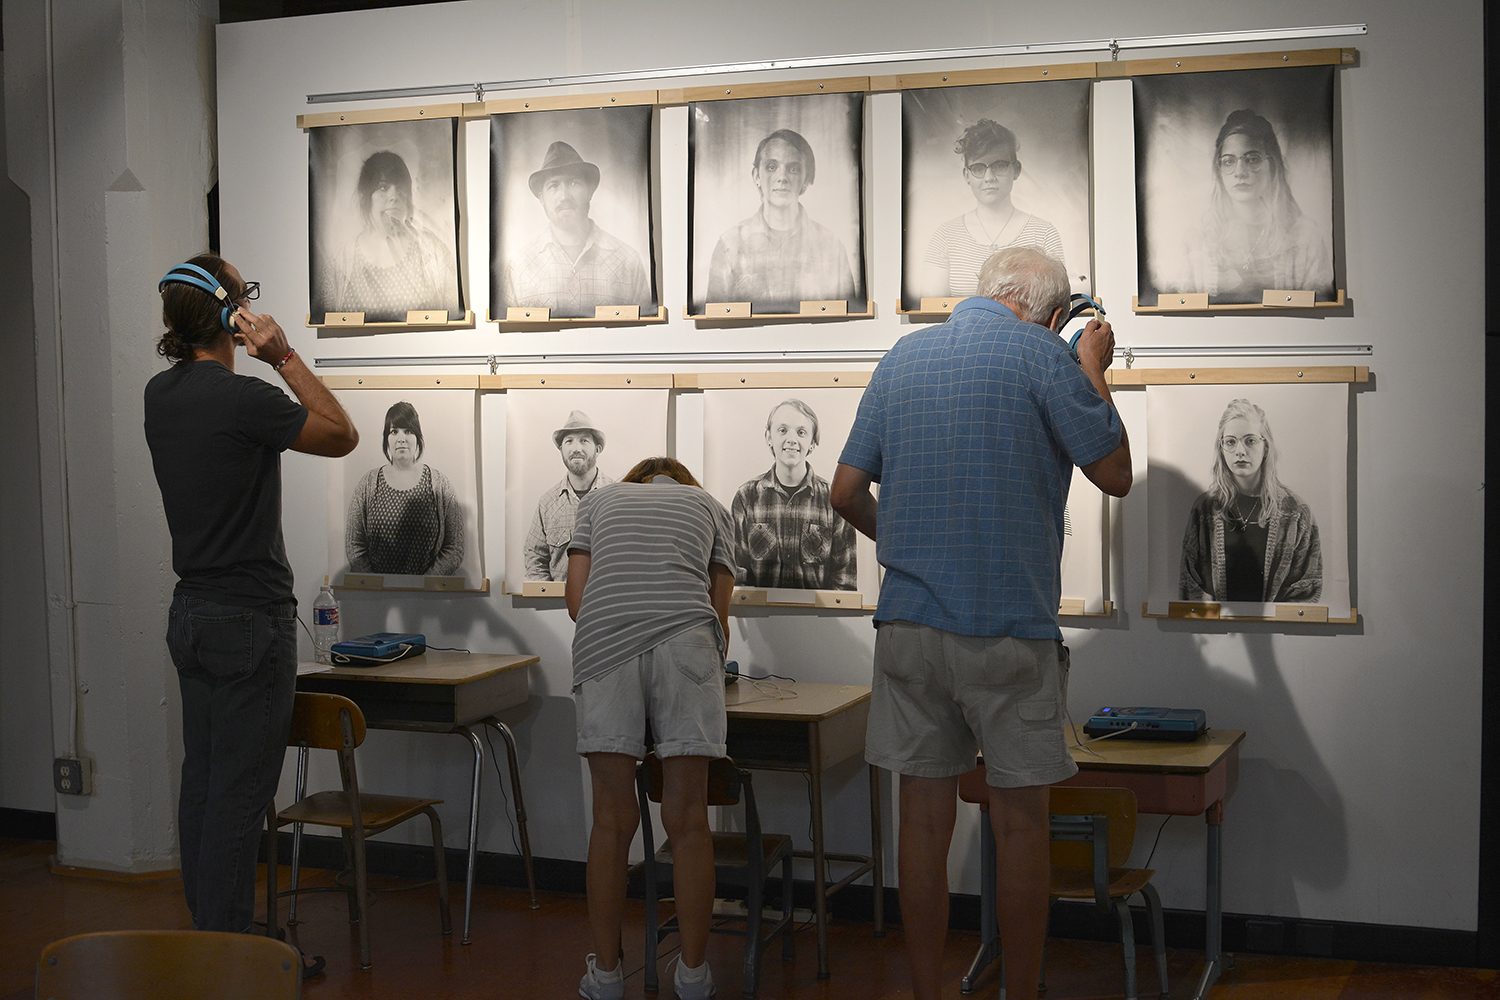 A group of people looking at the portraits and another group listening to a oral history recording.